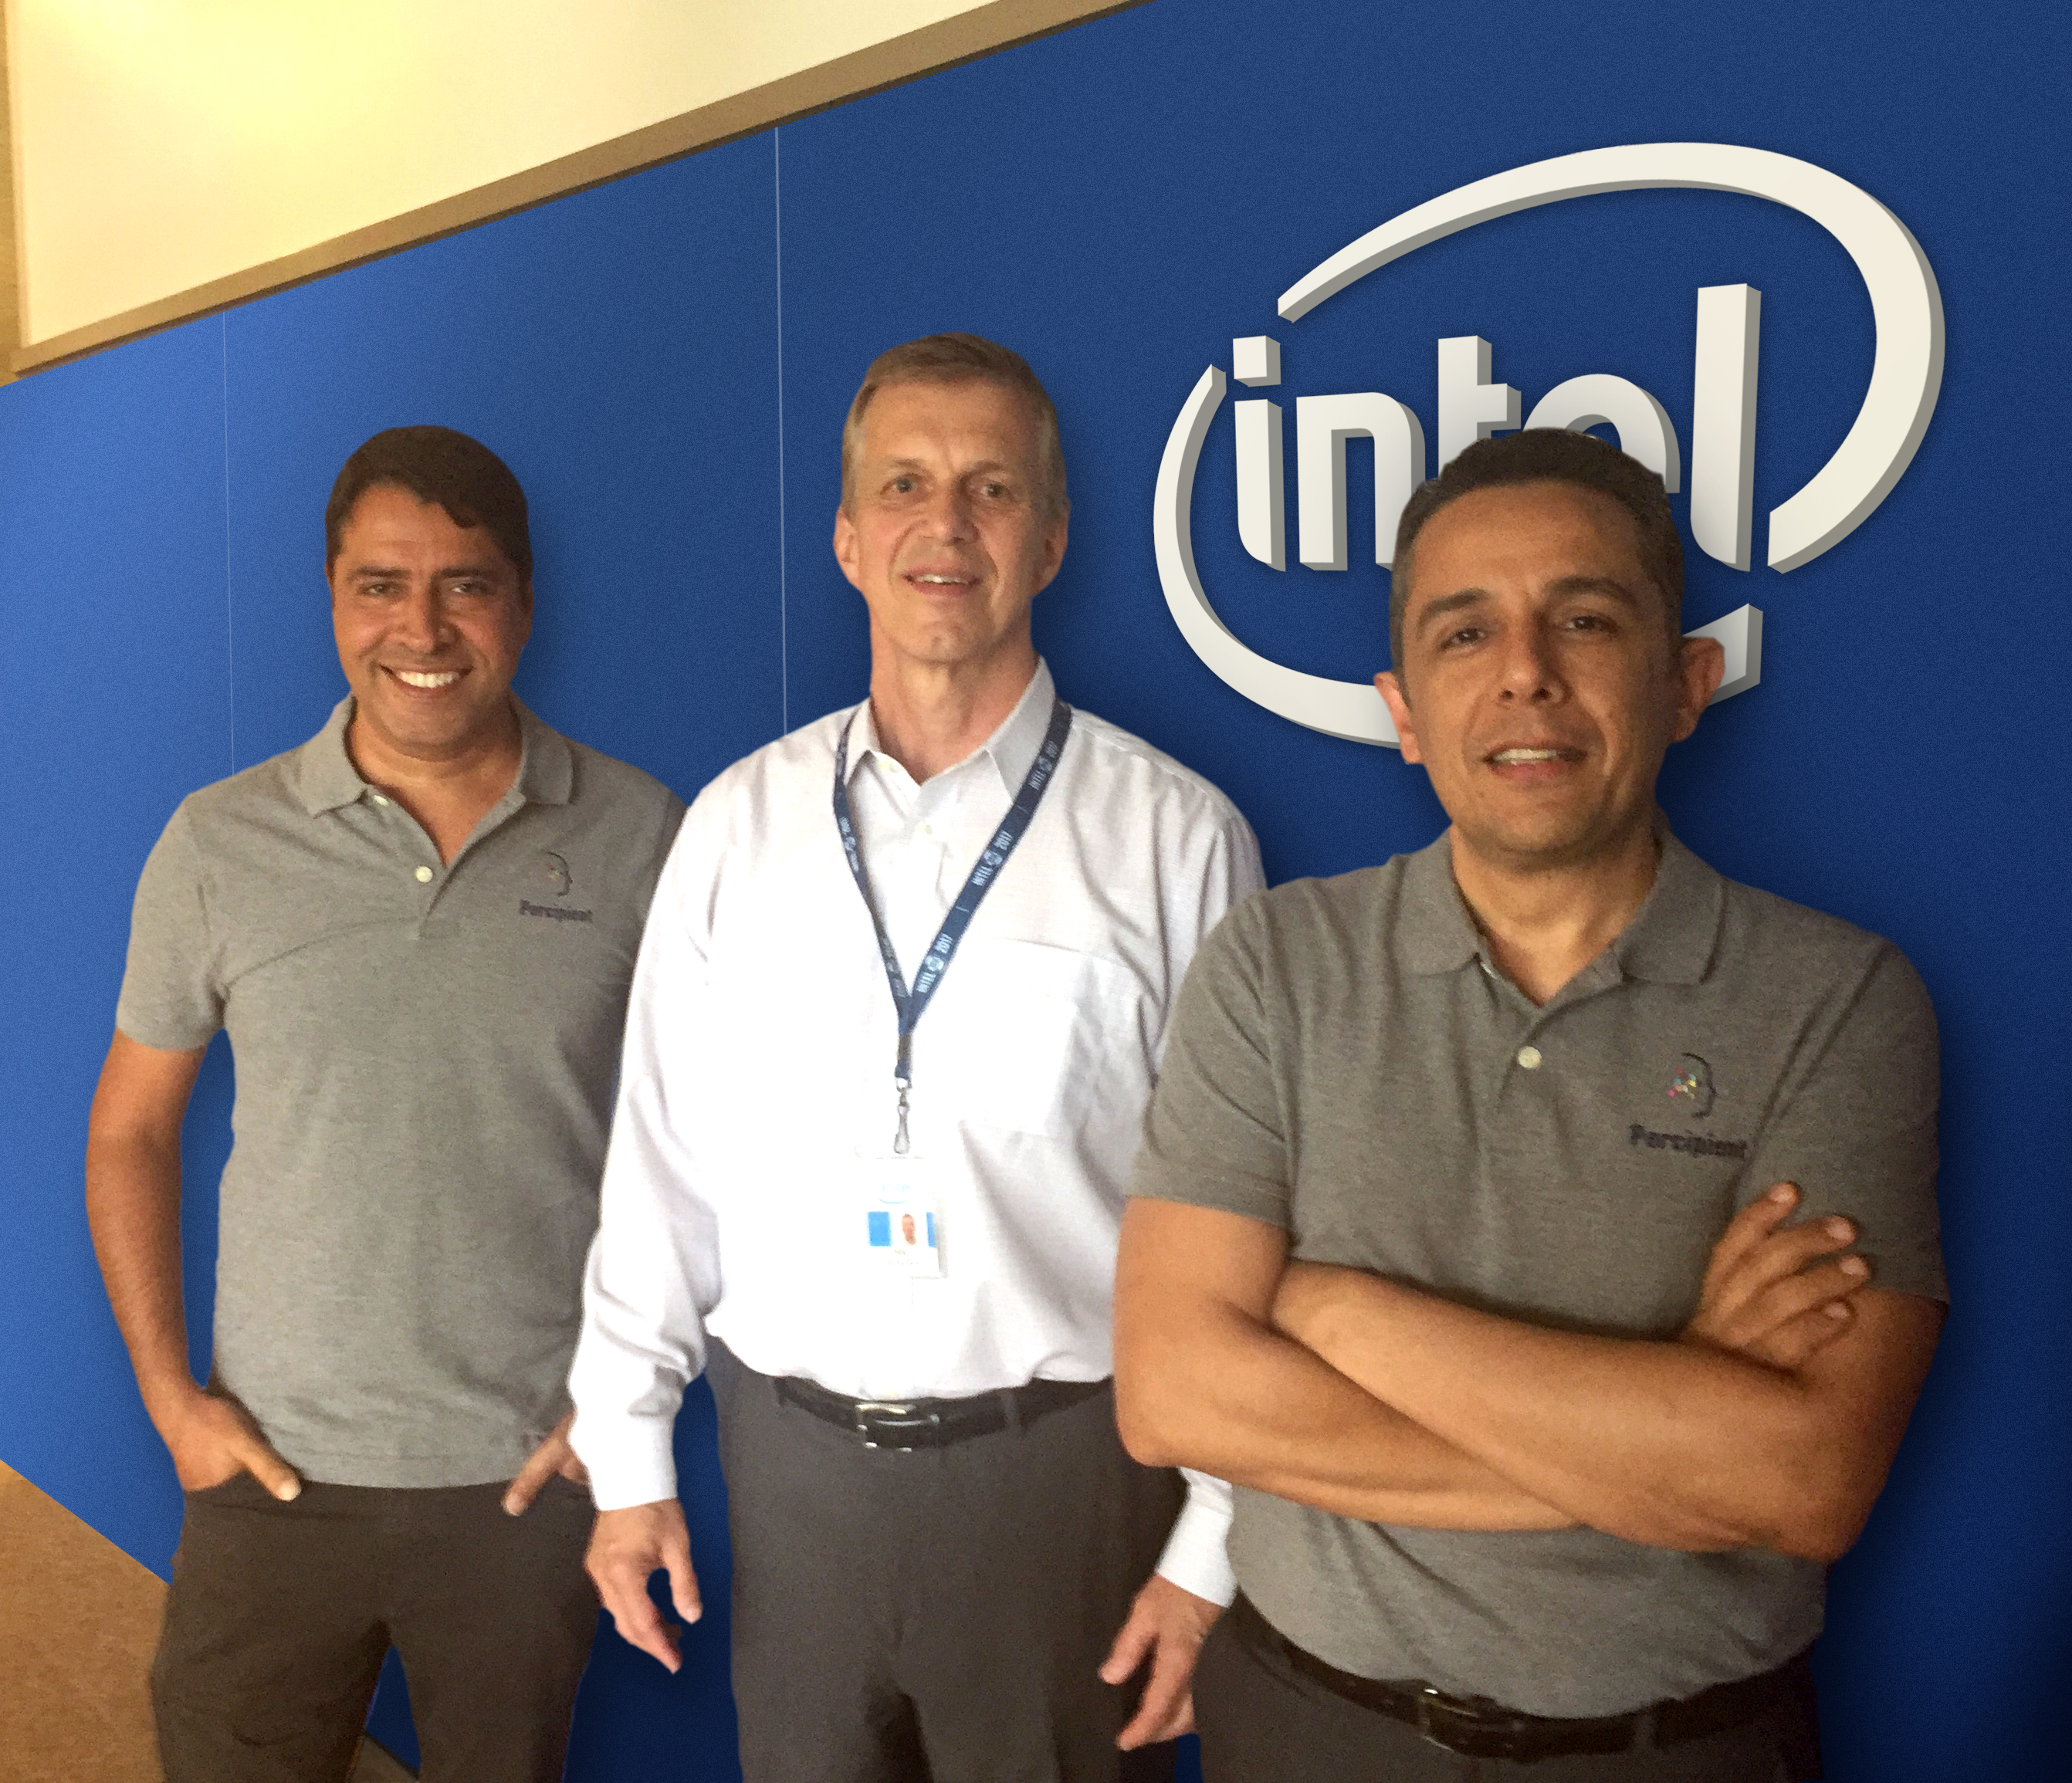 With Mike Blalock, GM FSI, Intel Corporation